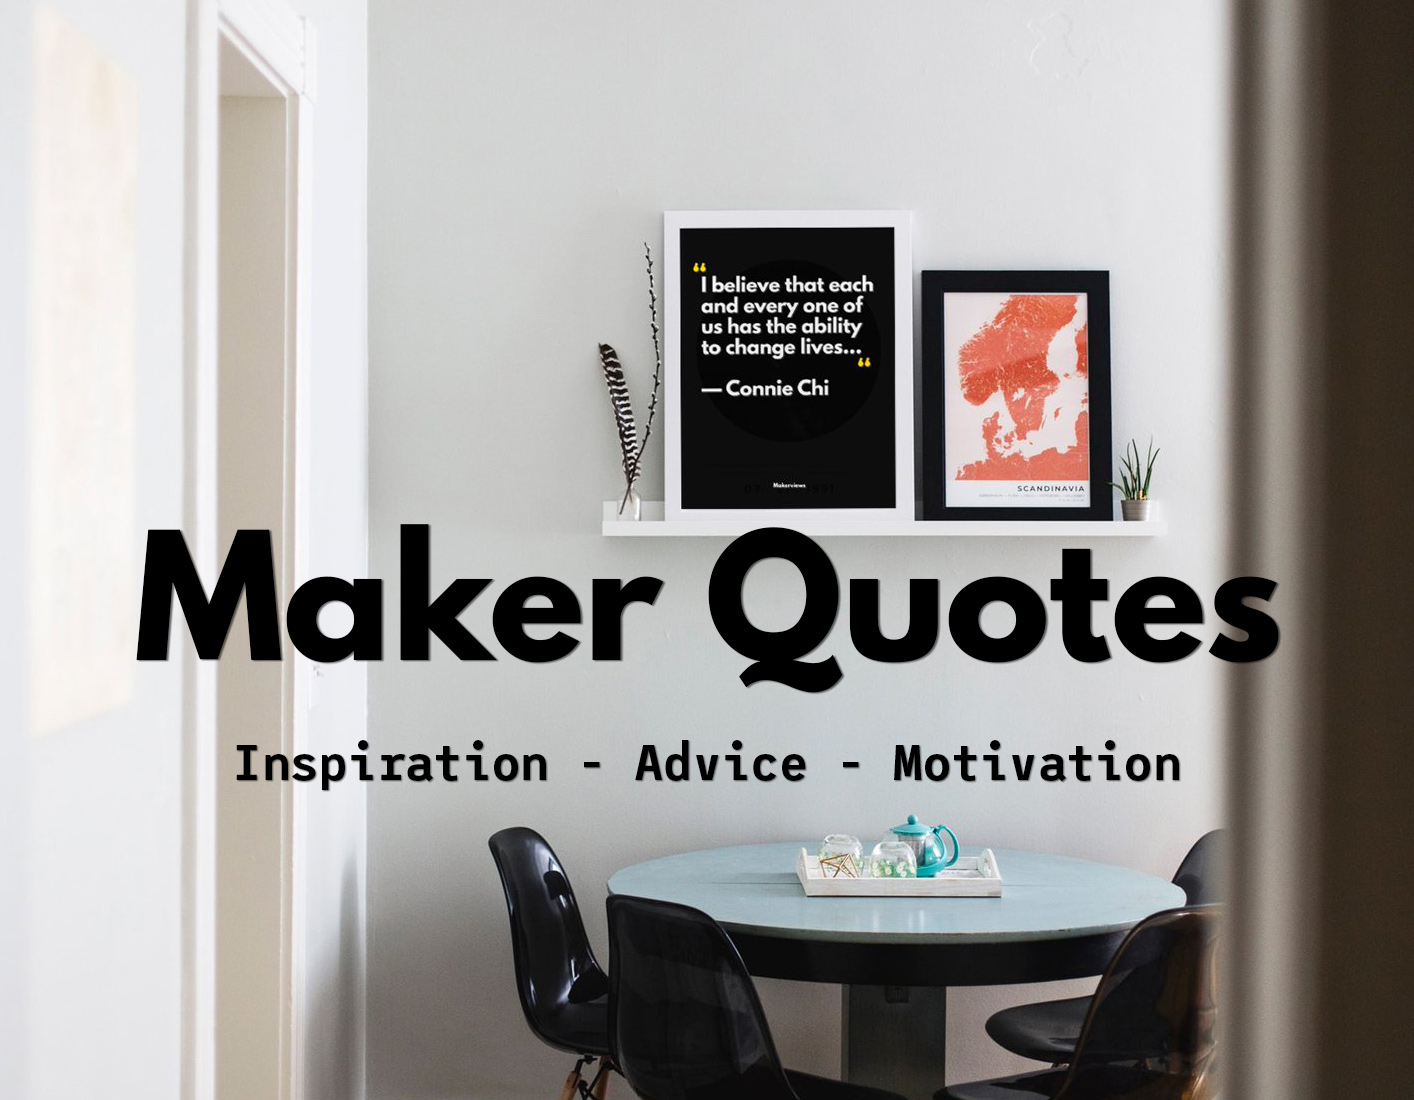 Maker Quotes 2019 - Motivational Quotes